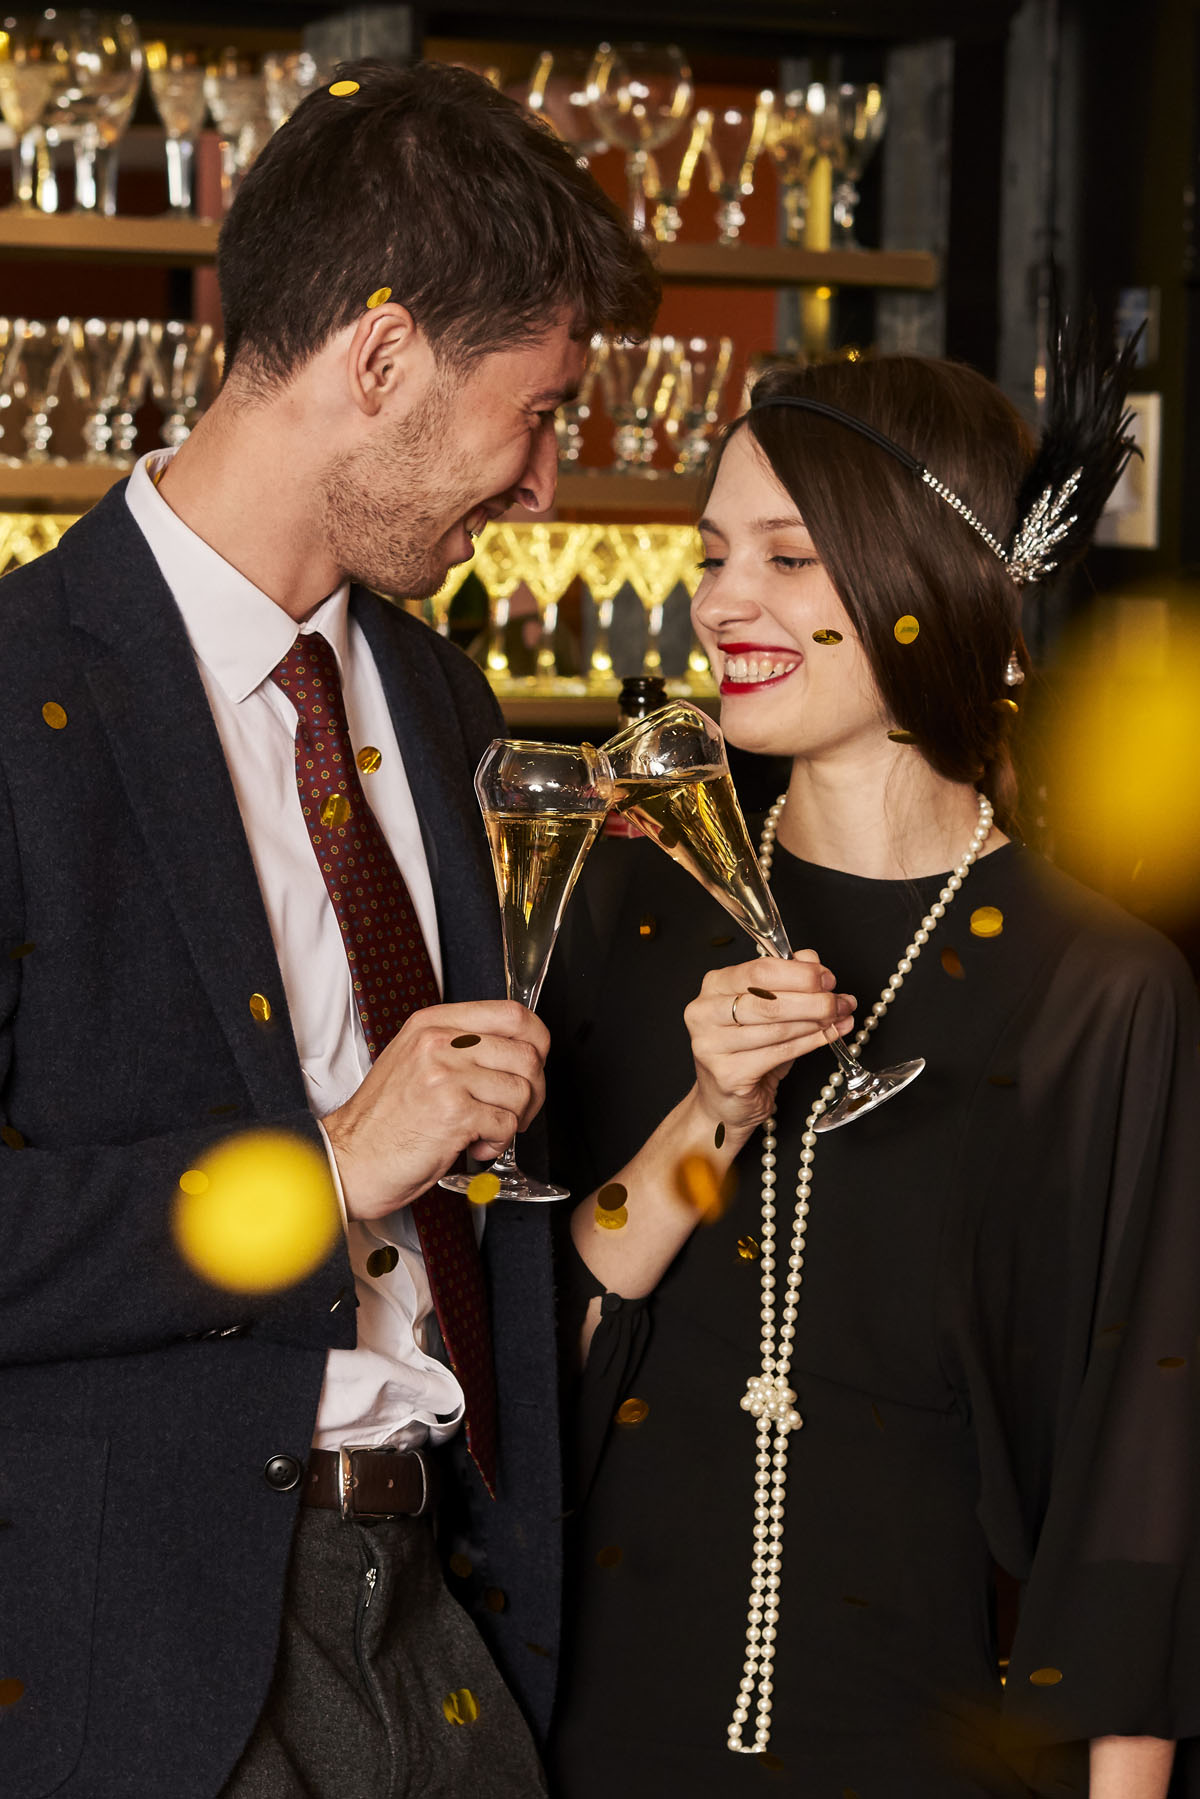 Couple in 1920s clothes drinking Champagne